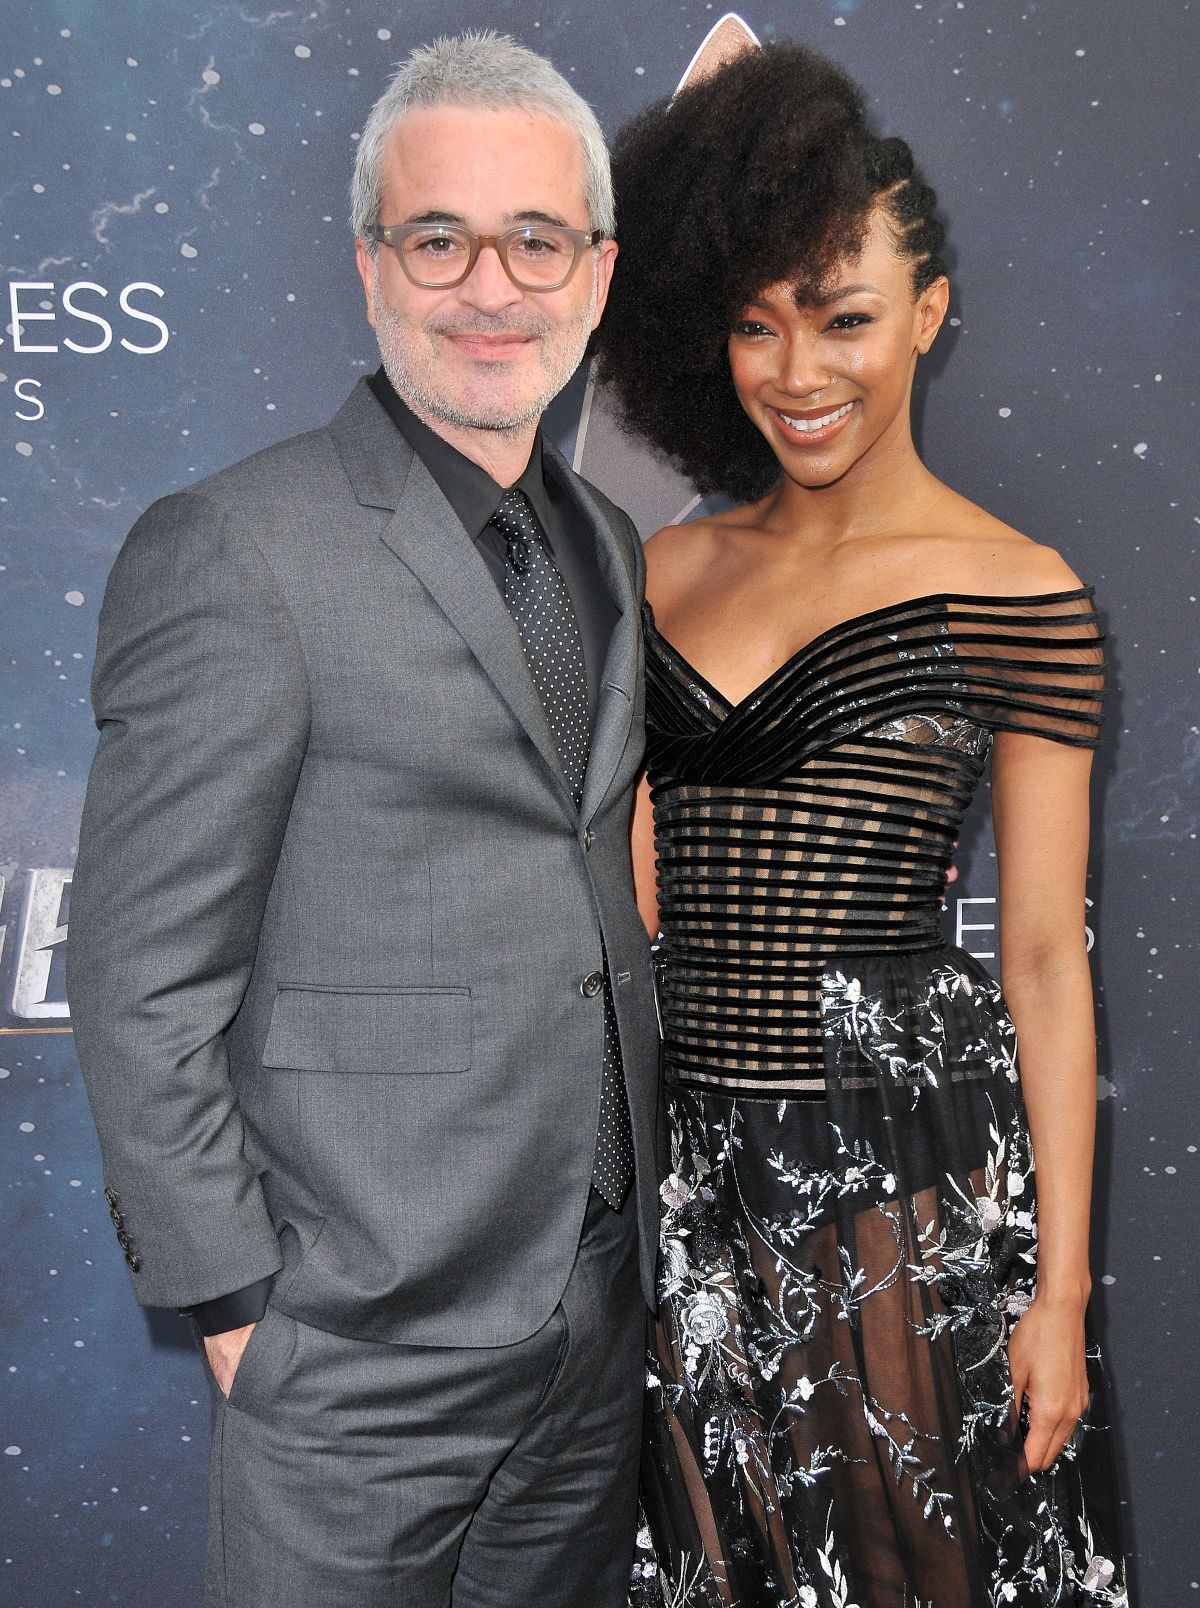 Sonequa Martin Green At Star Trek Discovery Premiere at the ArcLight Cinerama Dome